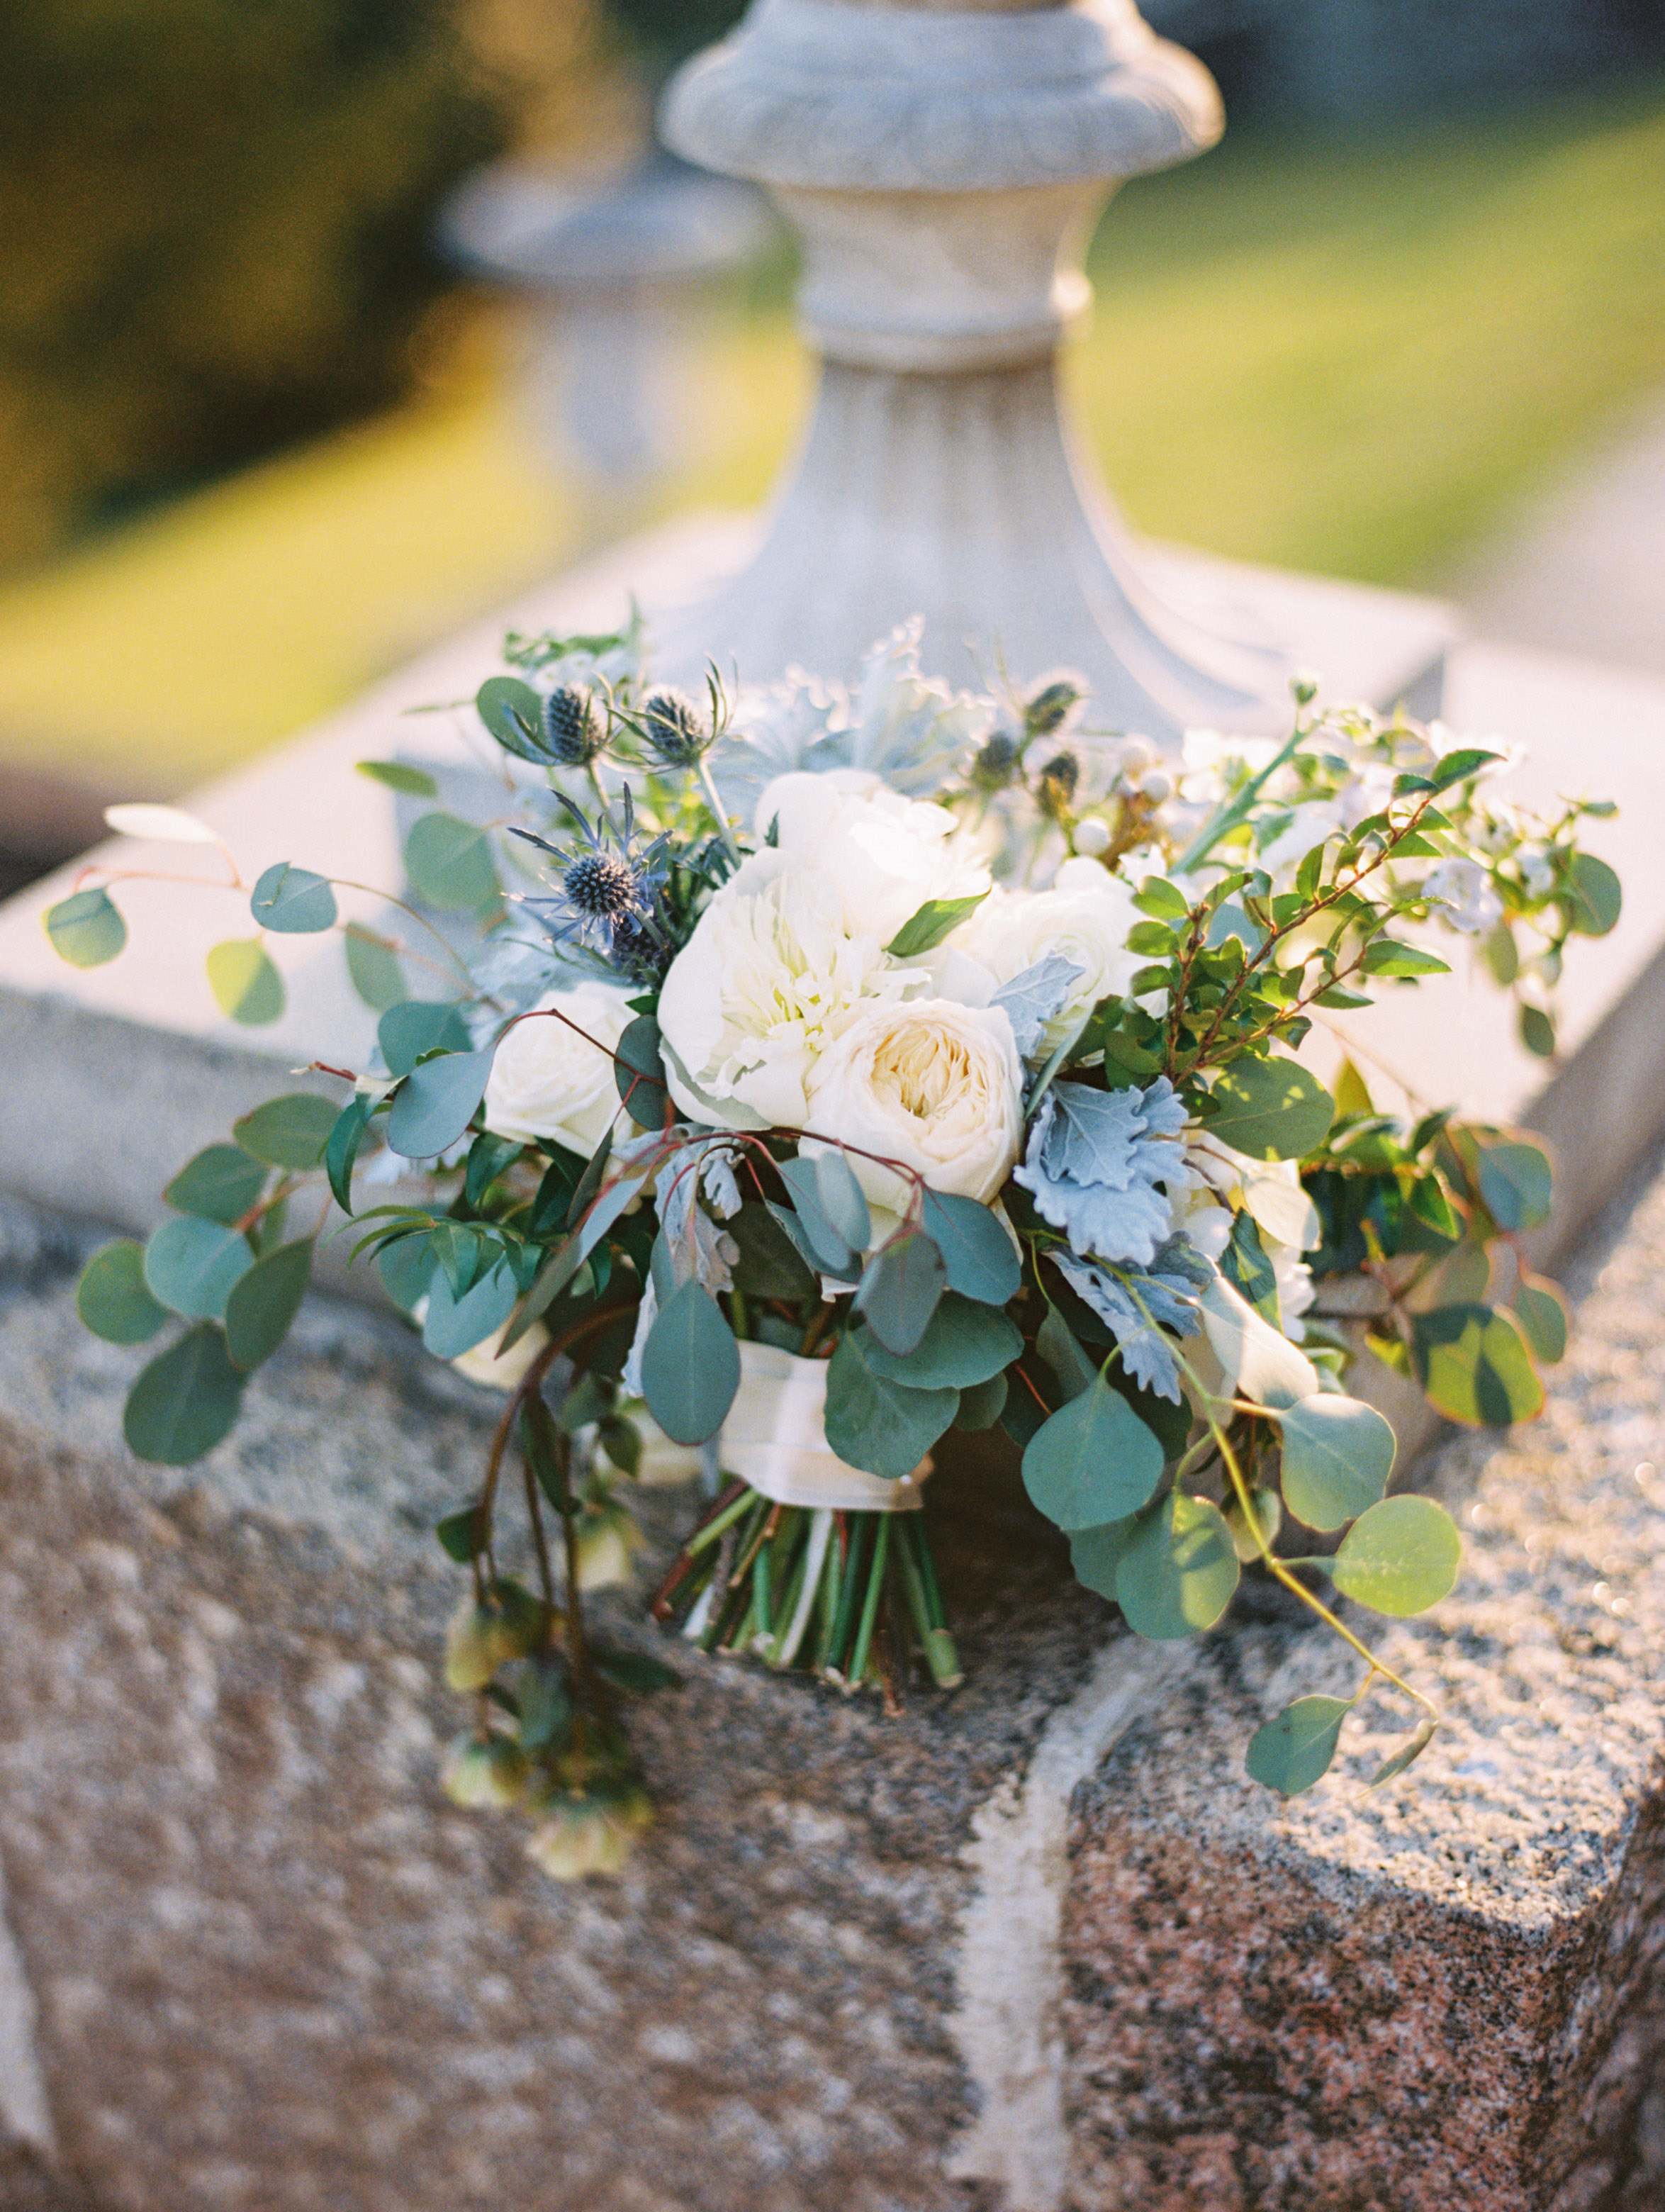 wedding bridal bouquet white green blue gray flowers